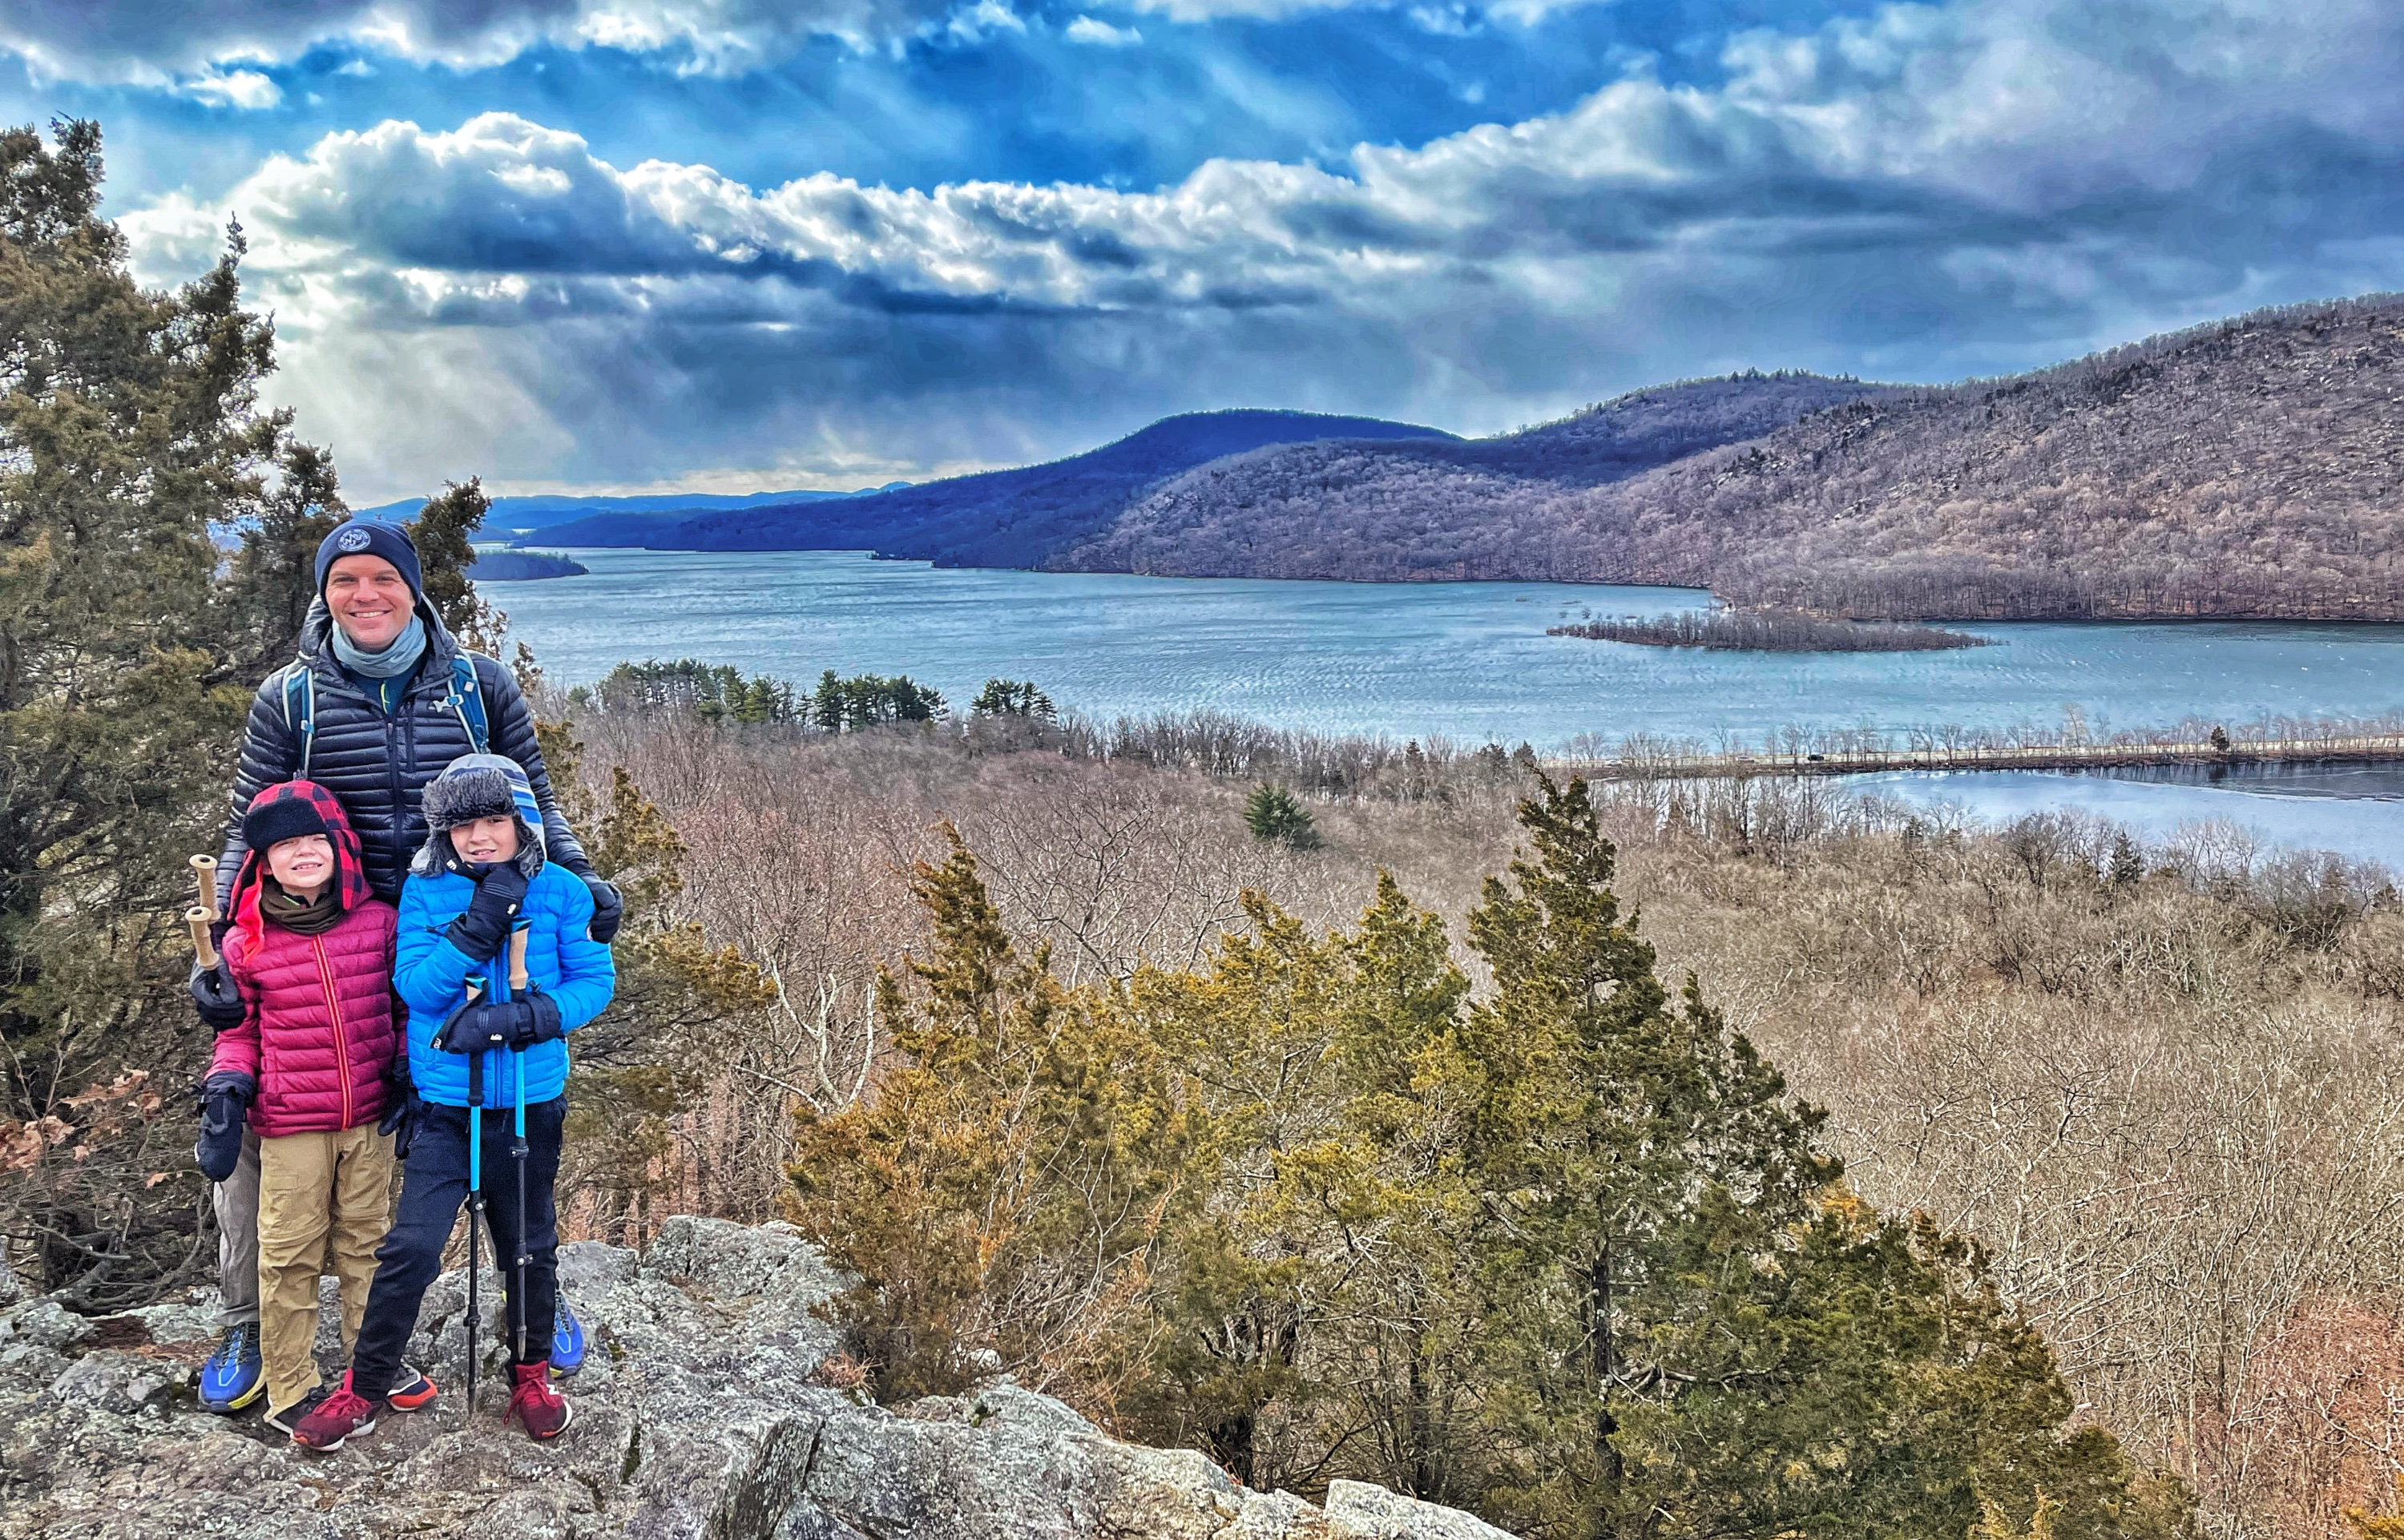 View of Wanaque Reservoir from Governor Mountain